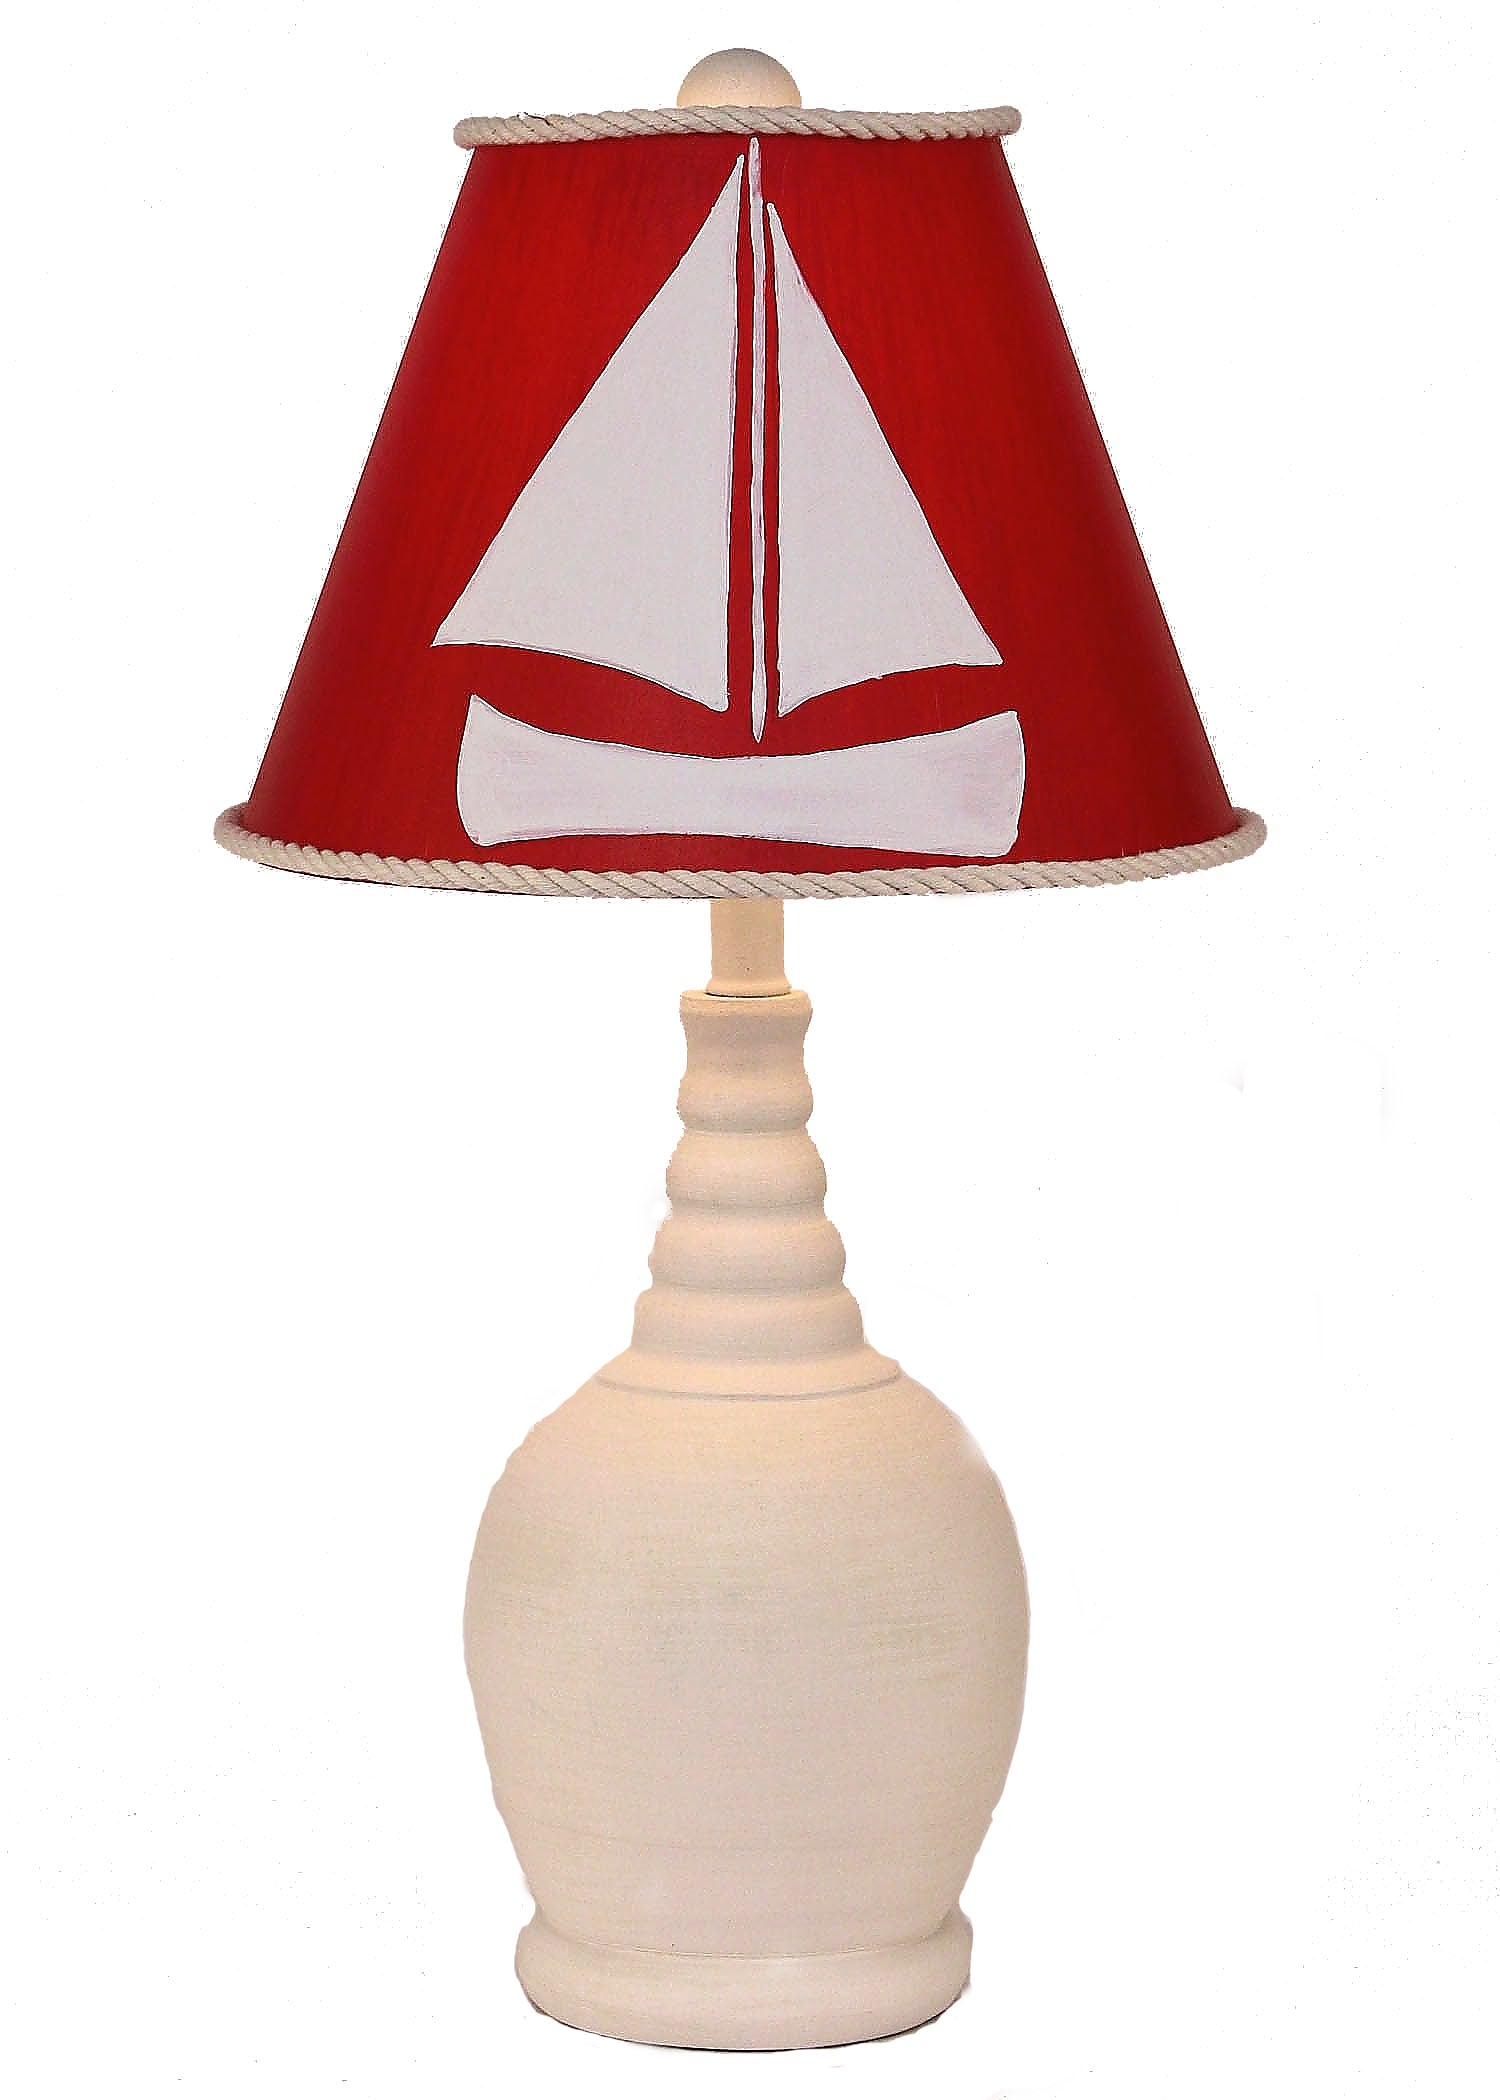 Classic Red and White Sailboat Accent Lamp - Coast Lamp Shop